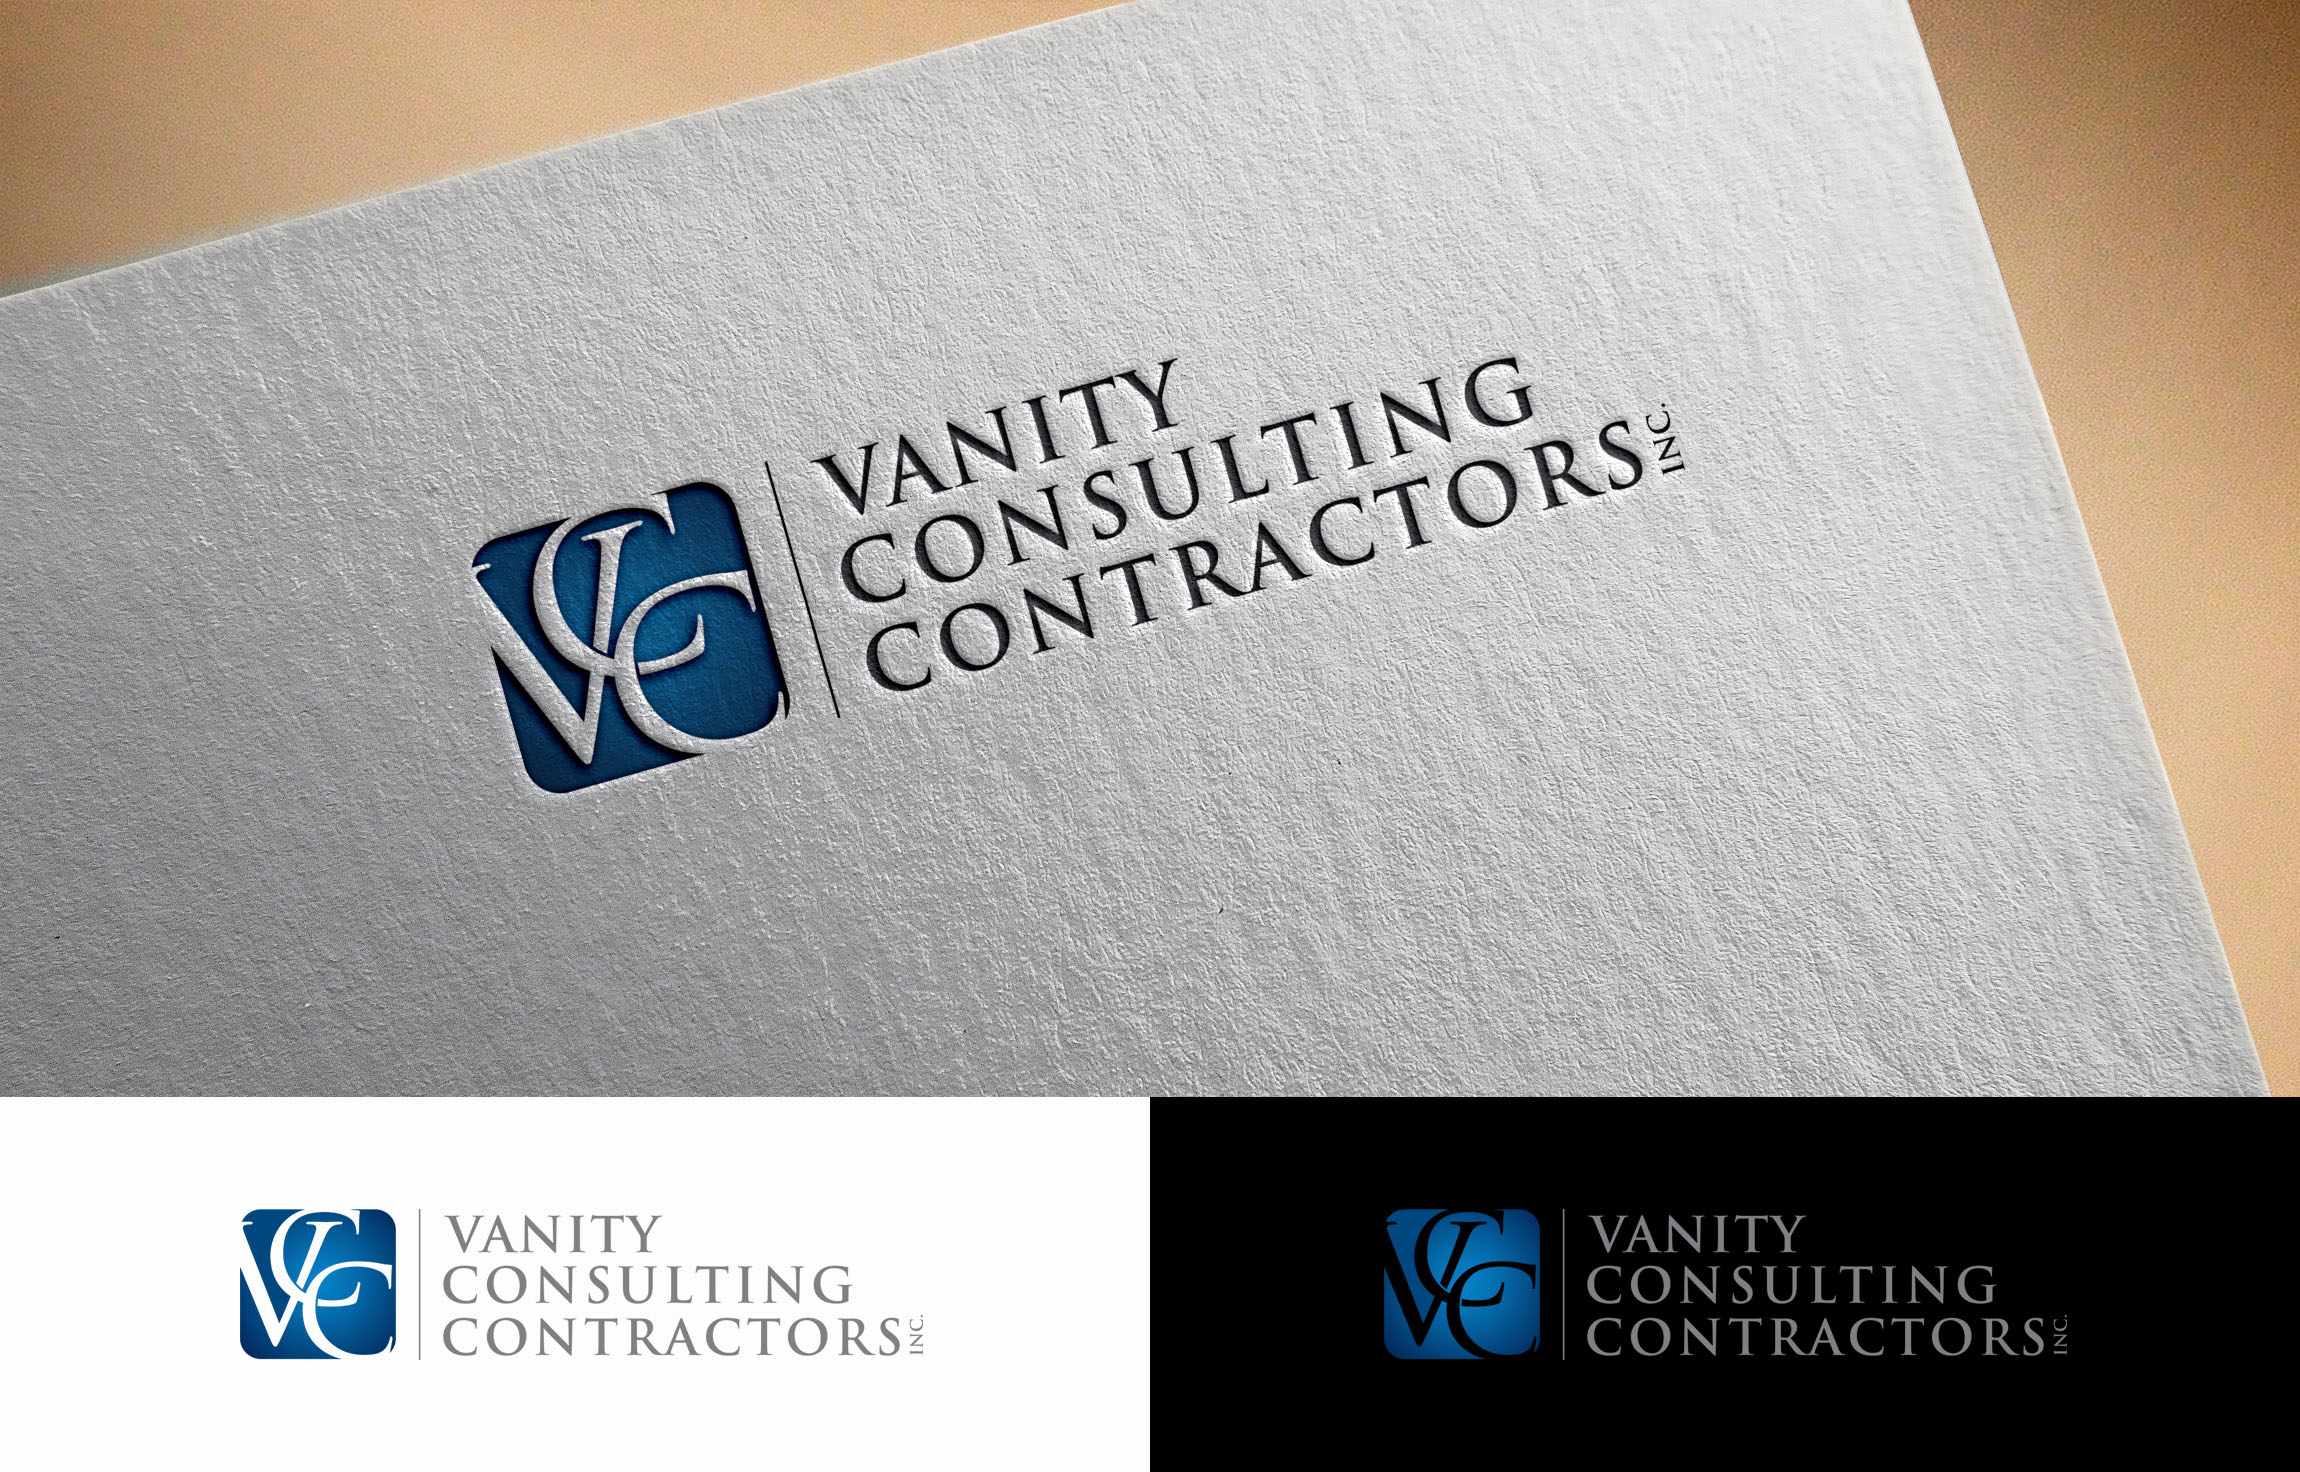 logo design contest for vanity consulting contractors inc vcc